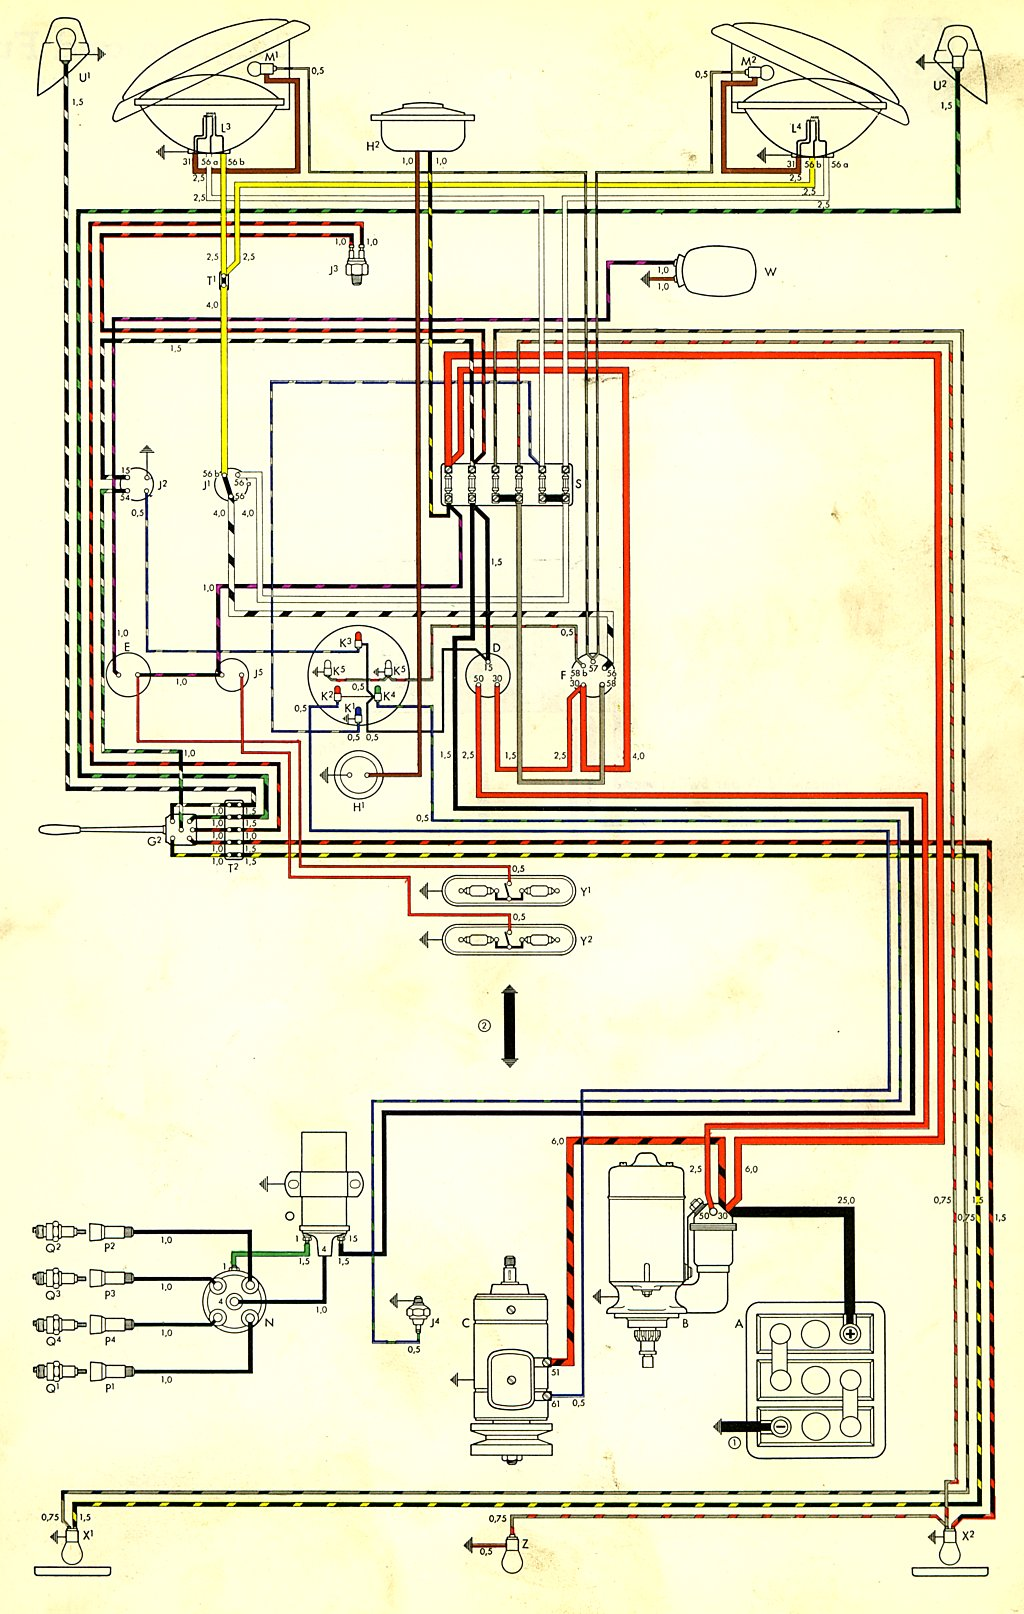 hight resolution of thesamba com type 2 wiring diagrams 1979 vw bus wiring diagram vw bus wiring location